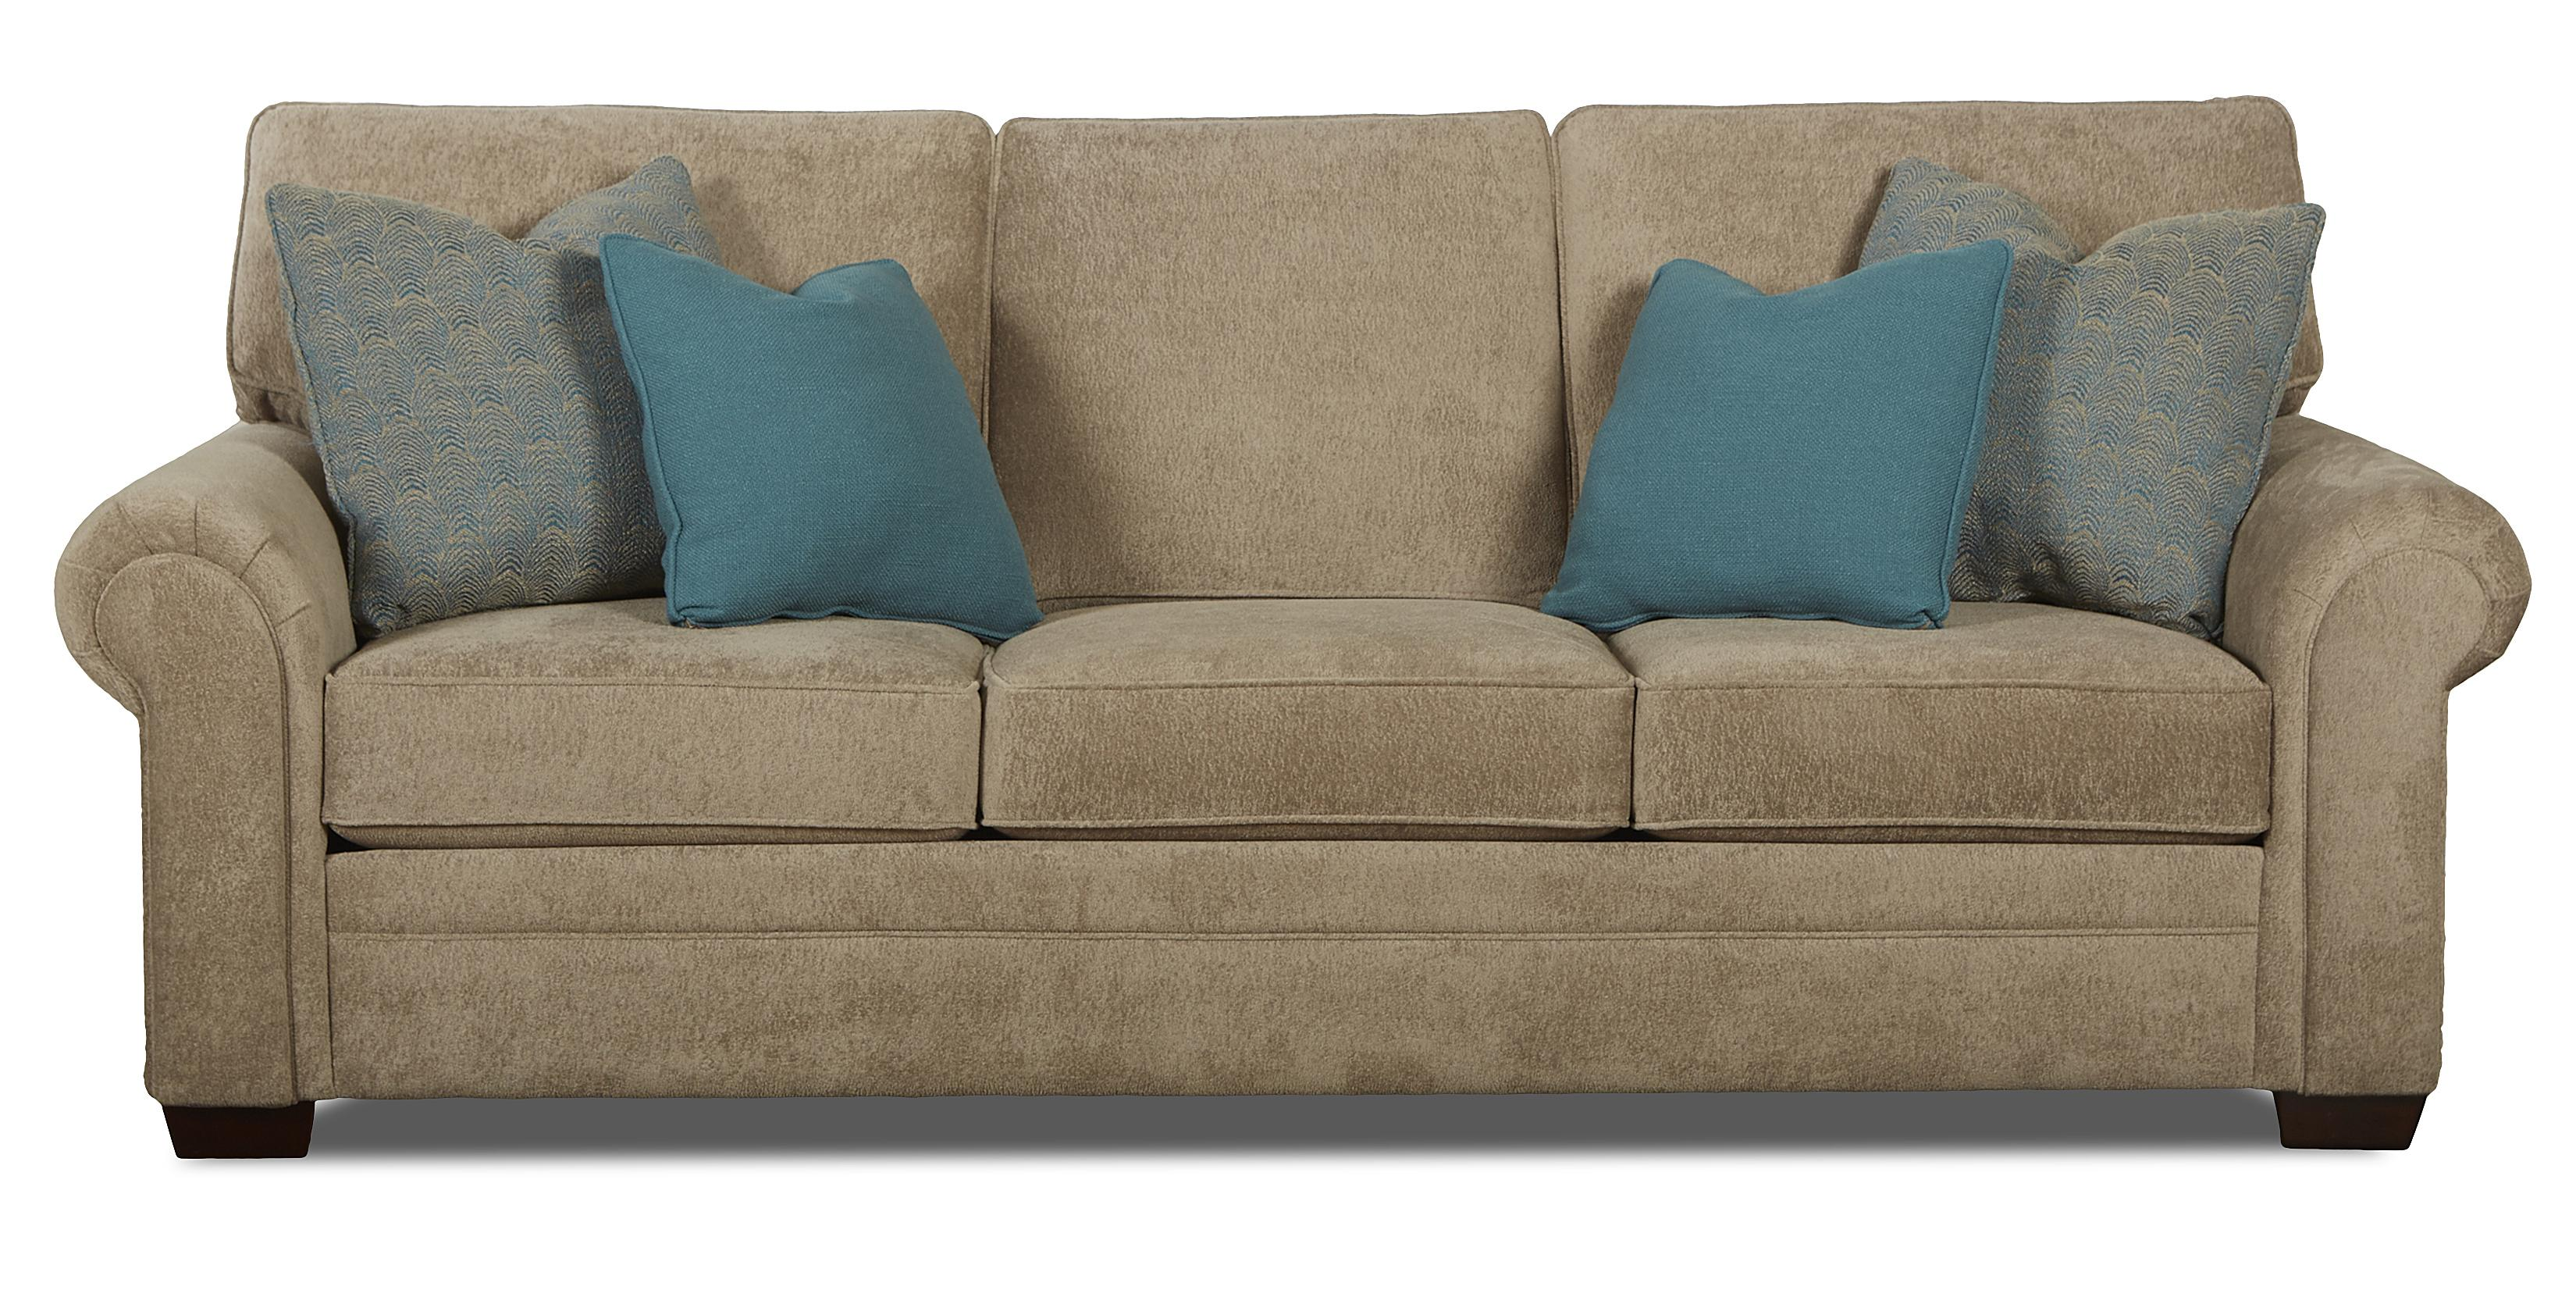 traditional sofa sleeper tampa florida queen inner spring by klaussner